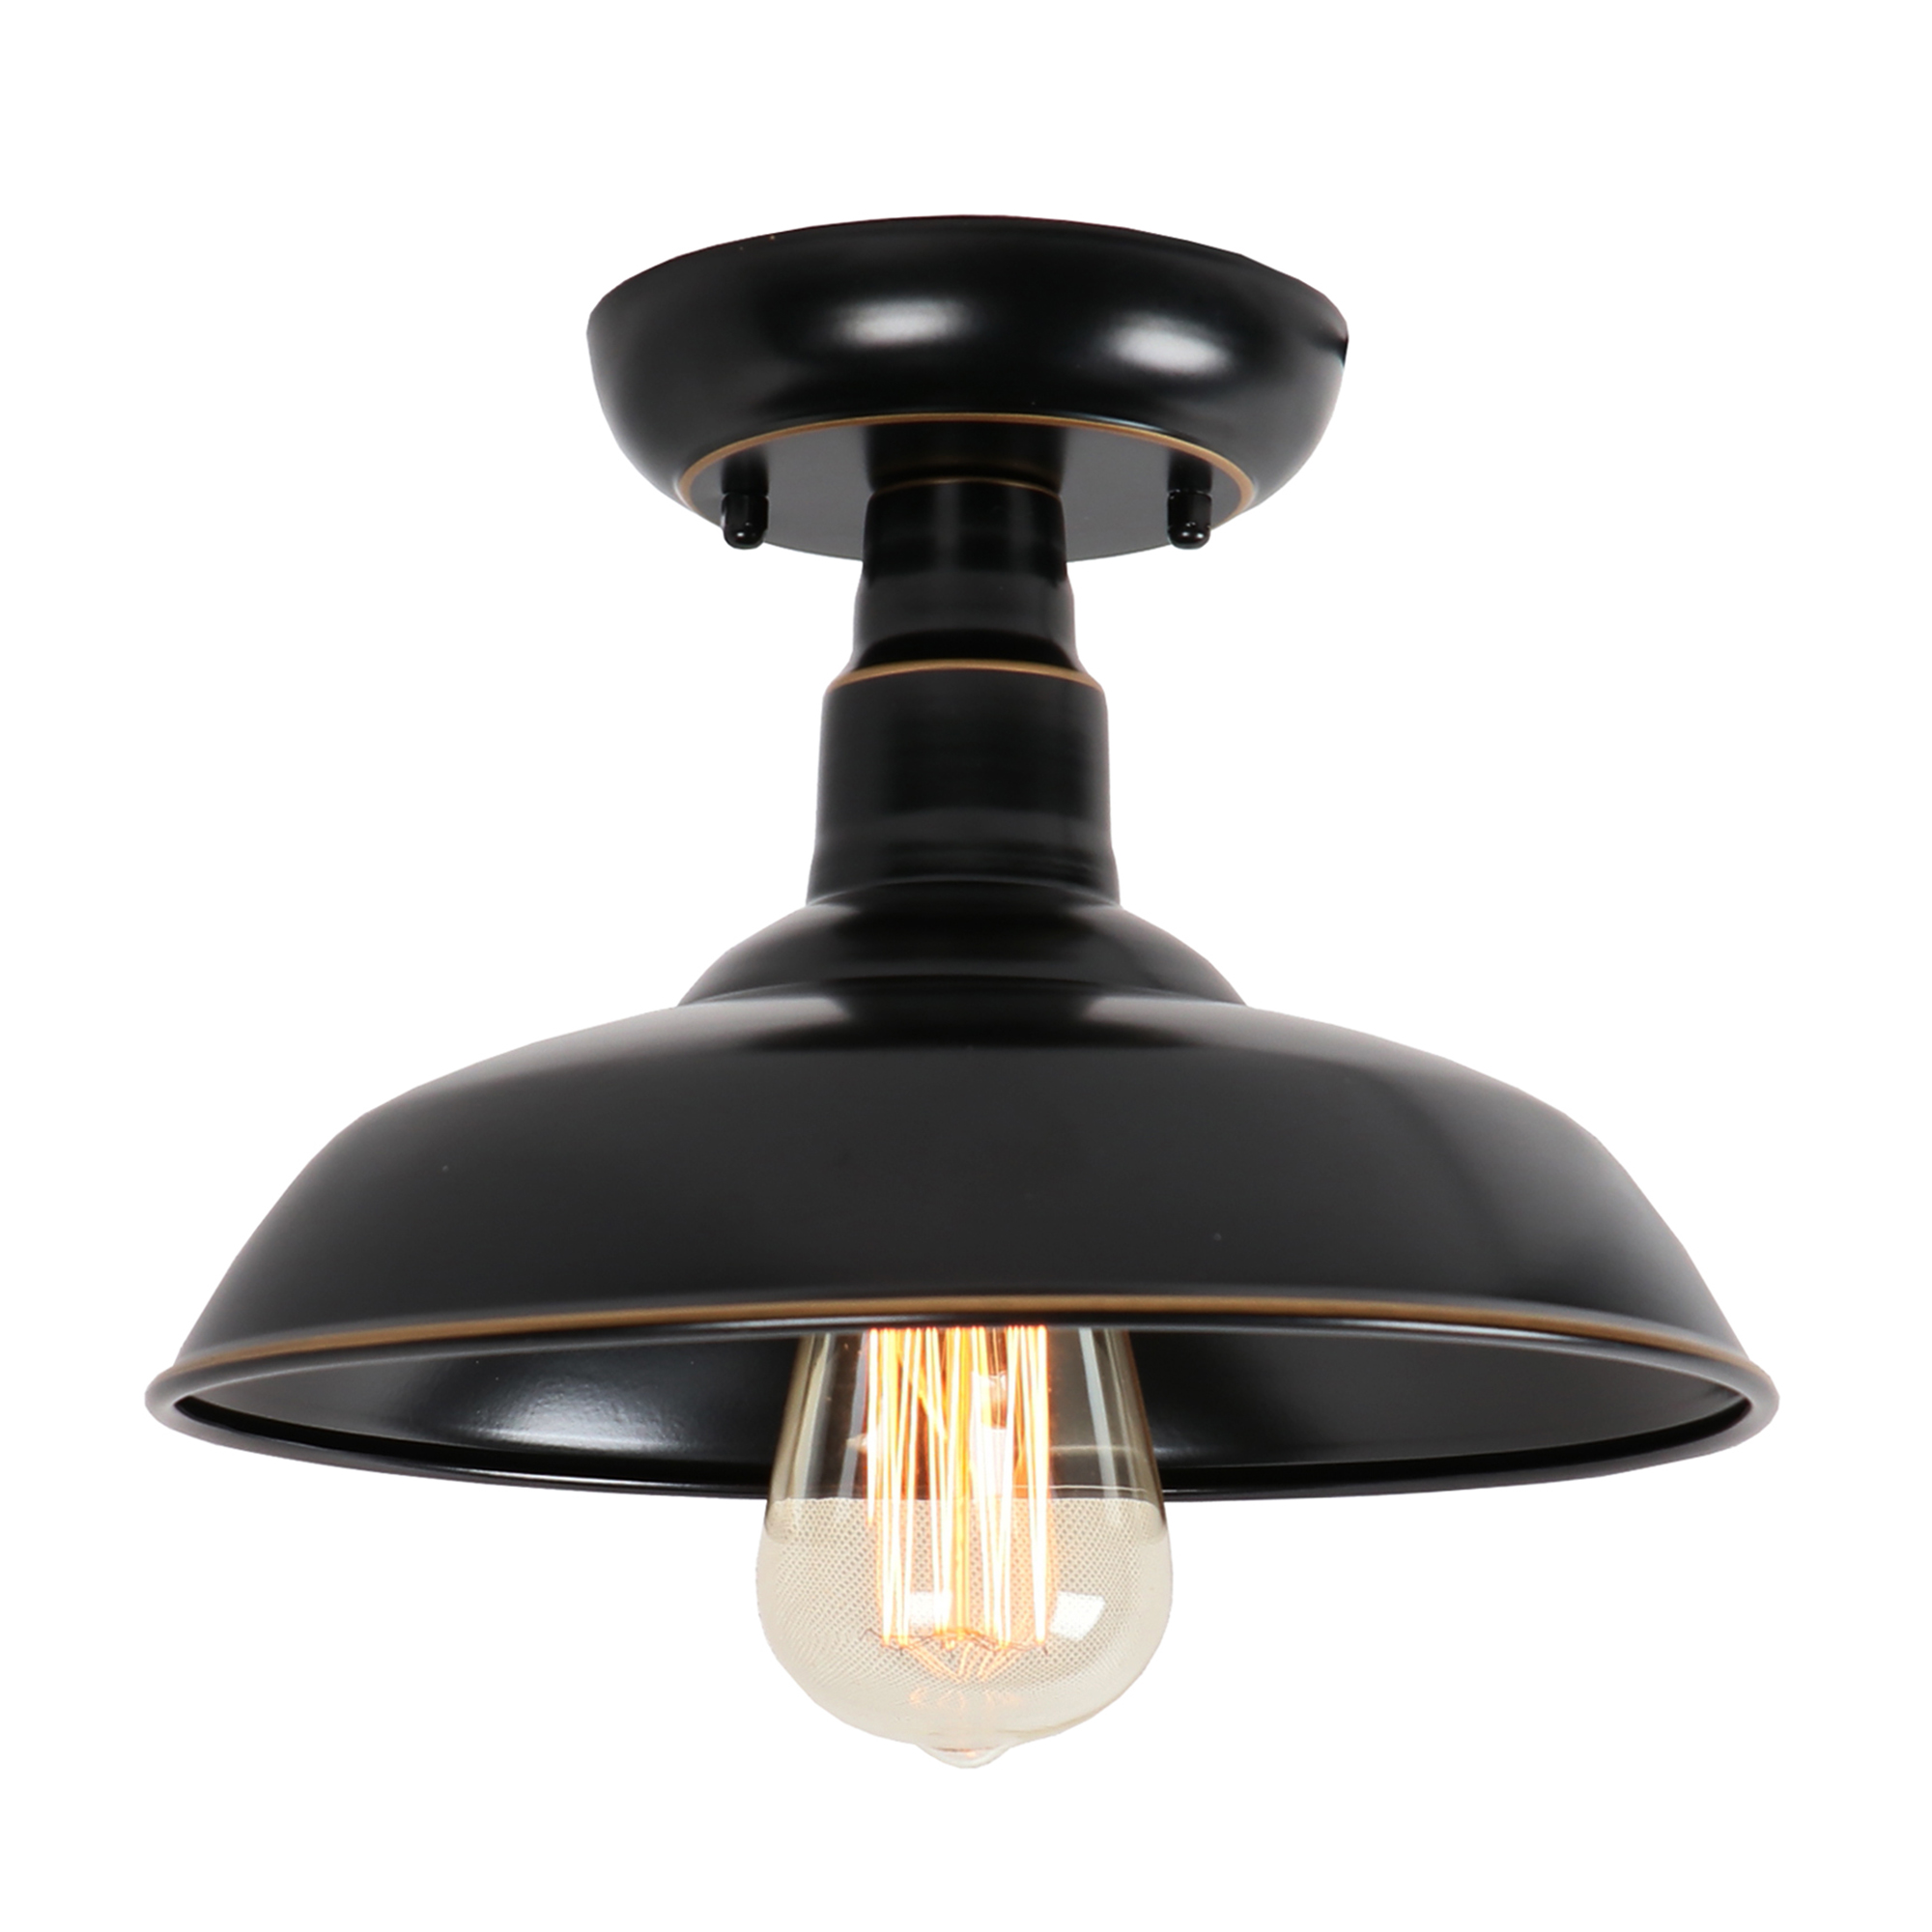 1 Light Outdoor Ceiling Mounted Lighting